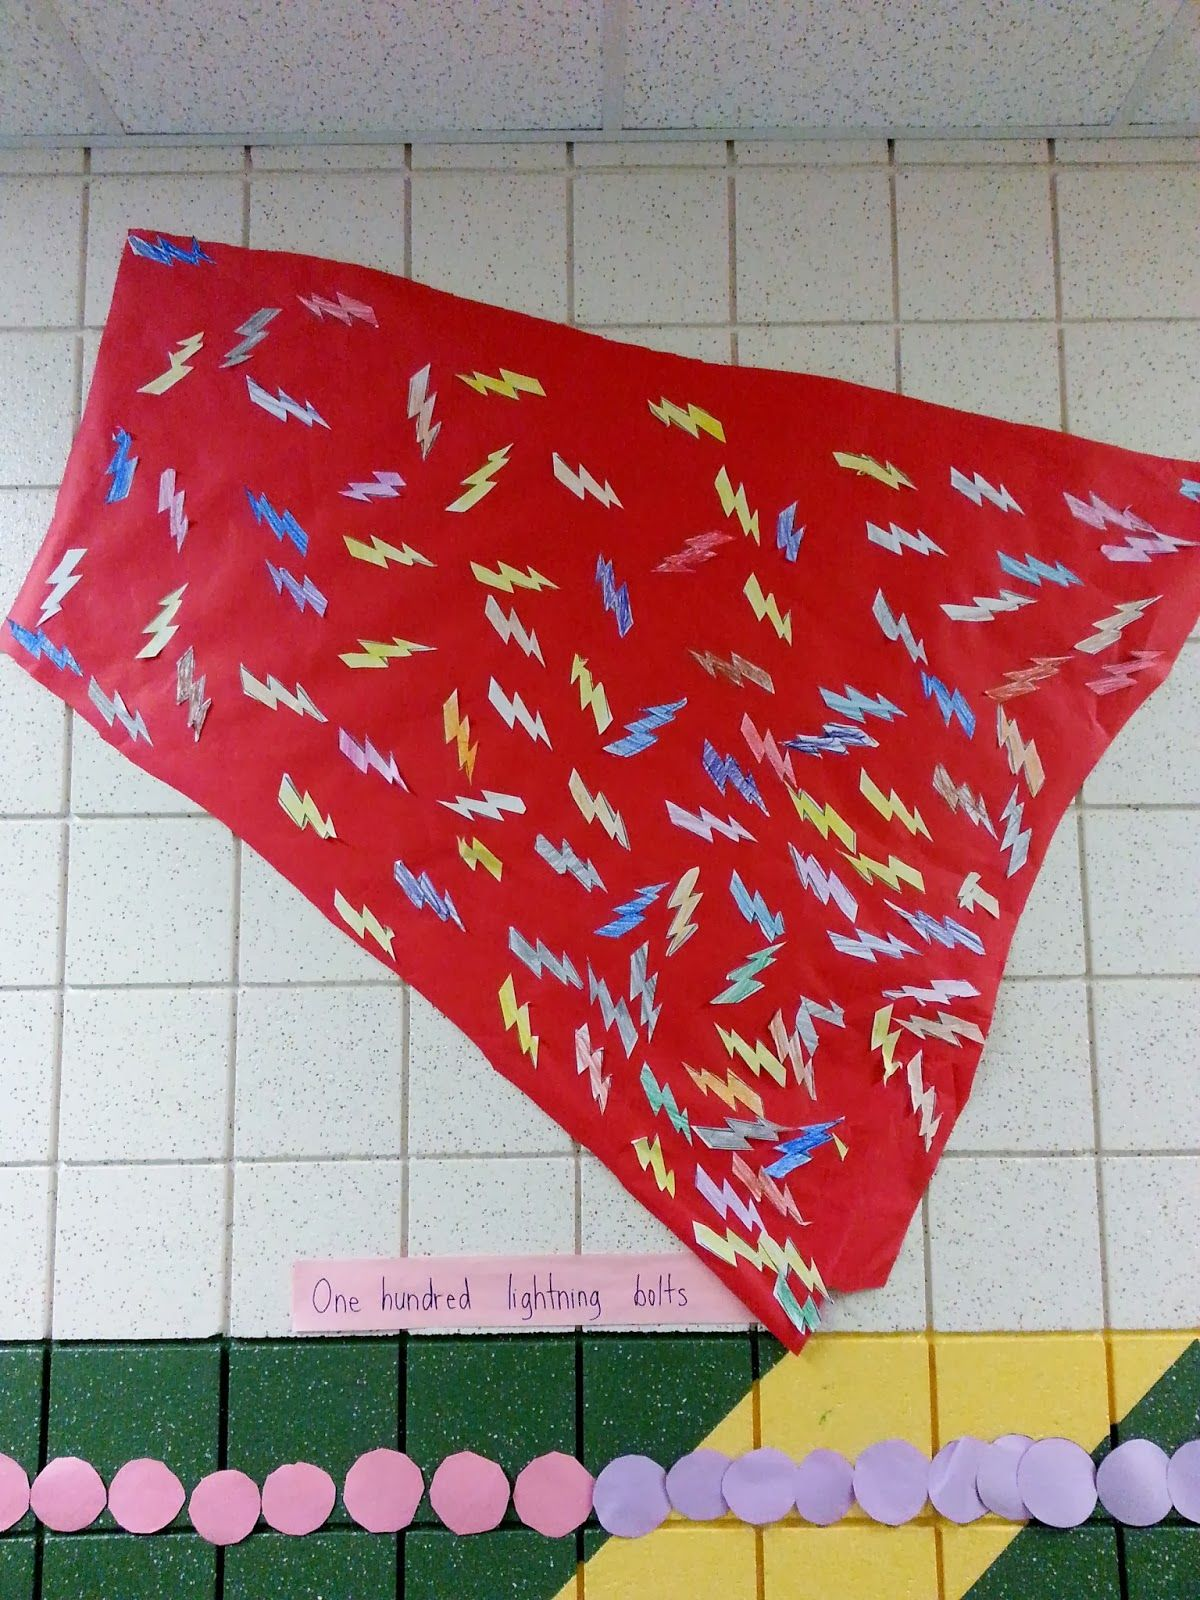 Our 100th Day Week Activities 100 Lightening Bolts On A Superhero Cape